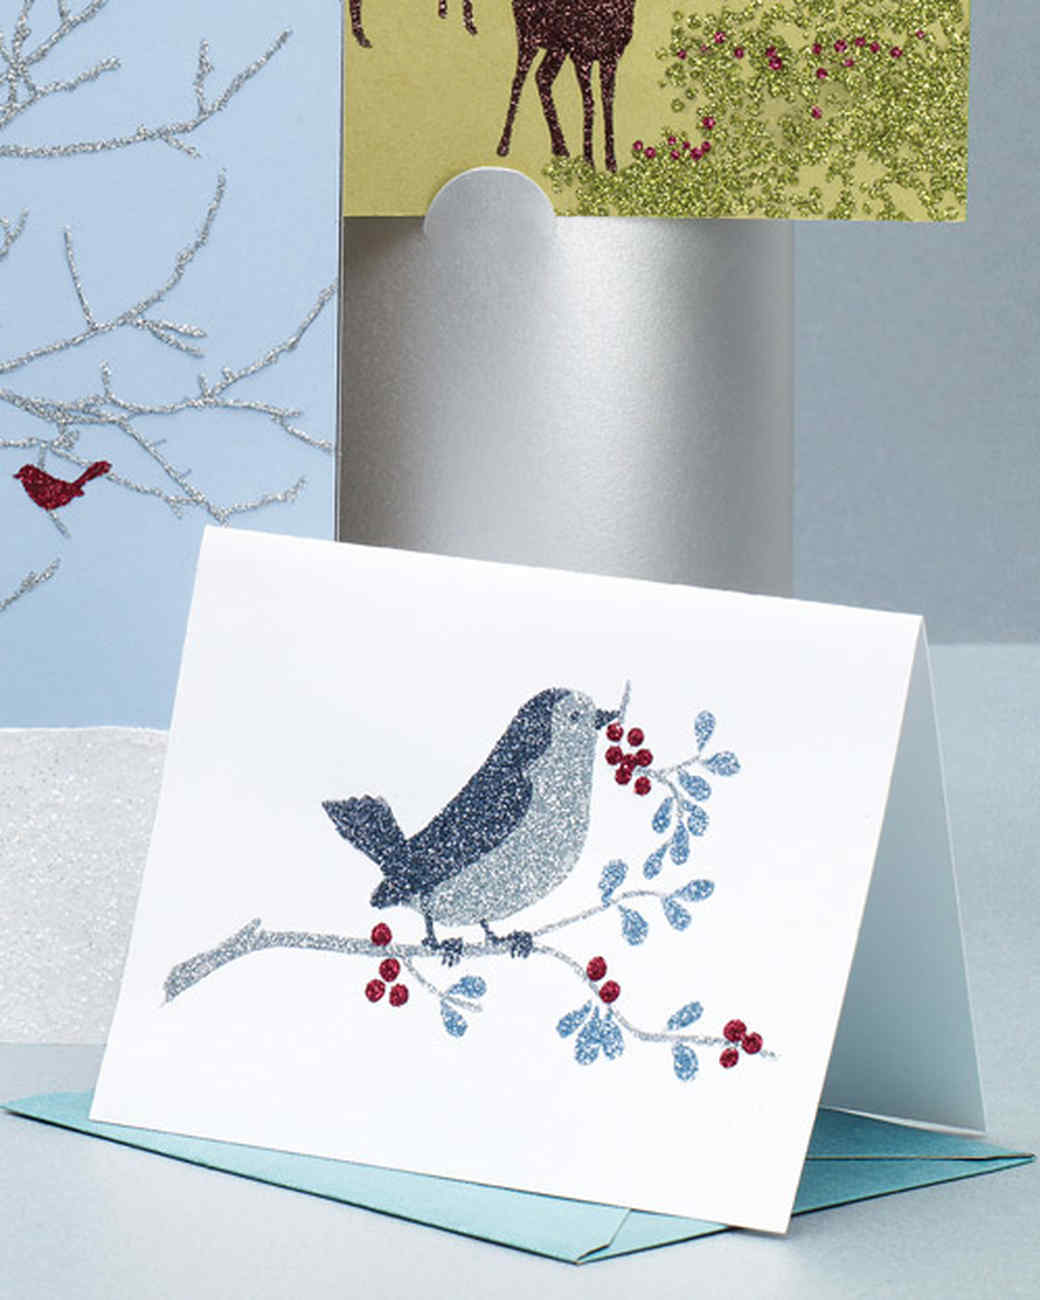 Glittered clip art bird and berry cards martha stewart glittered clip art bird and berry cards kristyandbryce Image collections